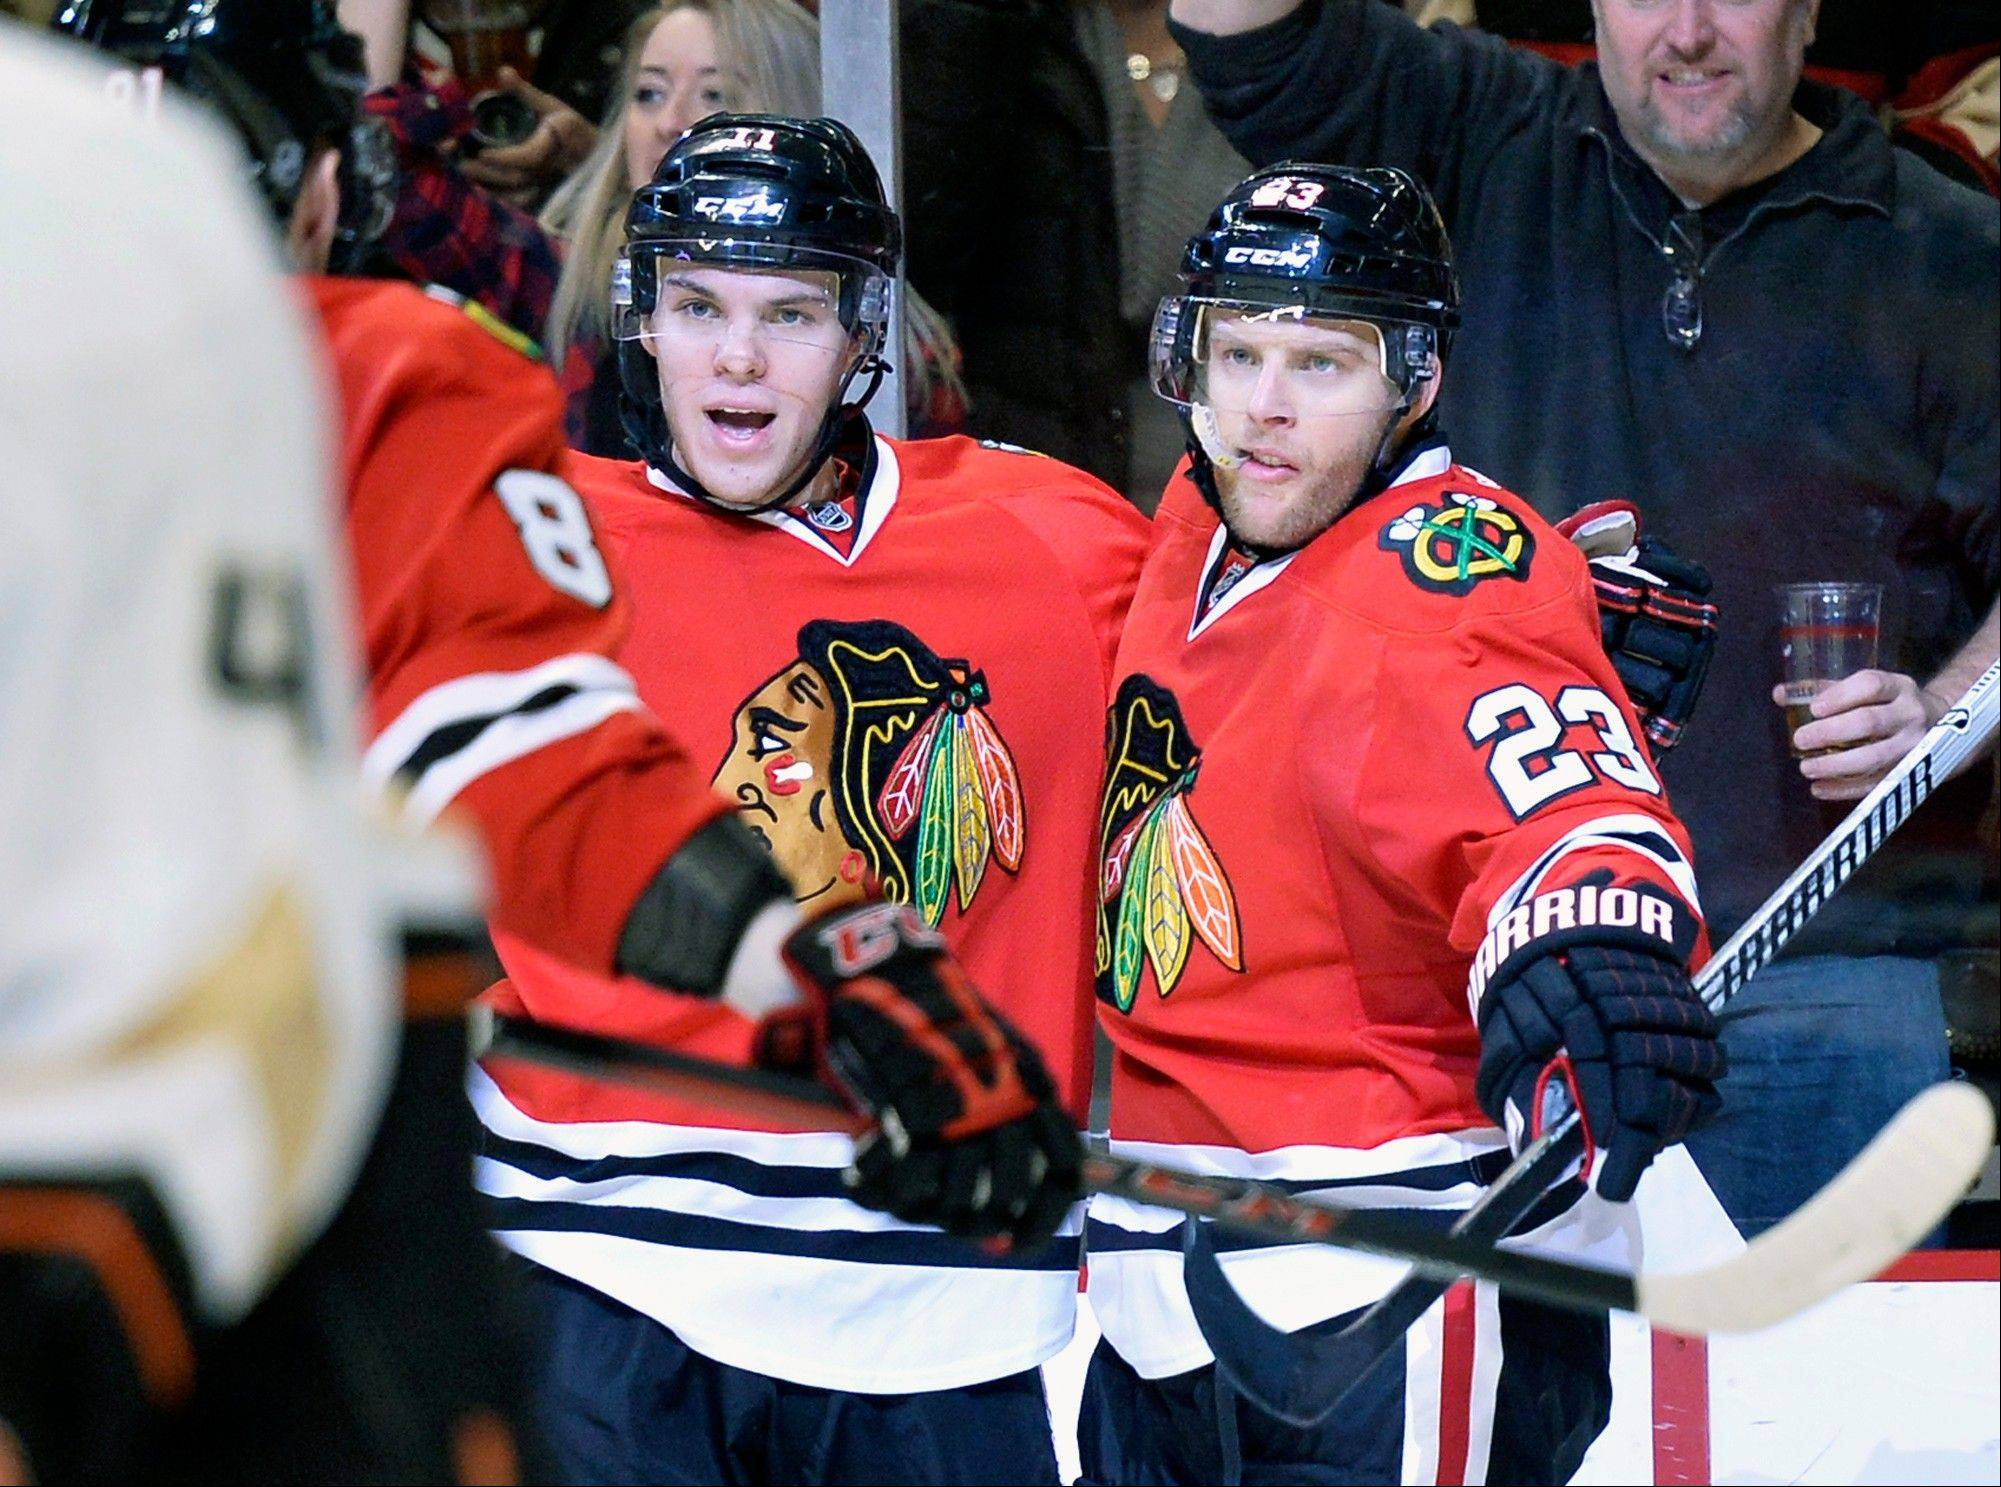 Blackhawks left wing Jeremy Morin, left, and right wing Kris Versteeg celebrate Versteeg's goal during the second period of an NHL hockey game against the Anaheim Ducks, Friday, Dec. 6, 2013, in Chicago.